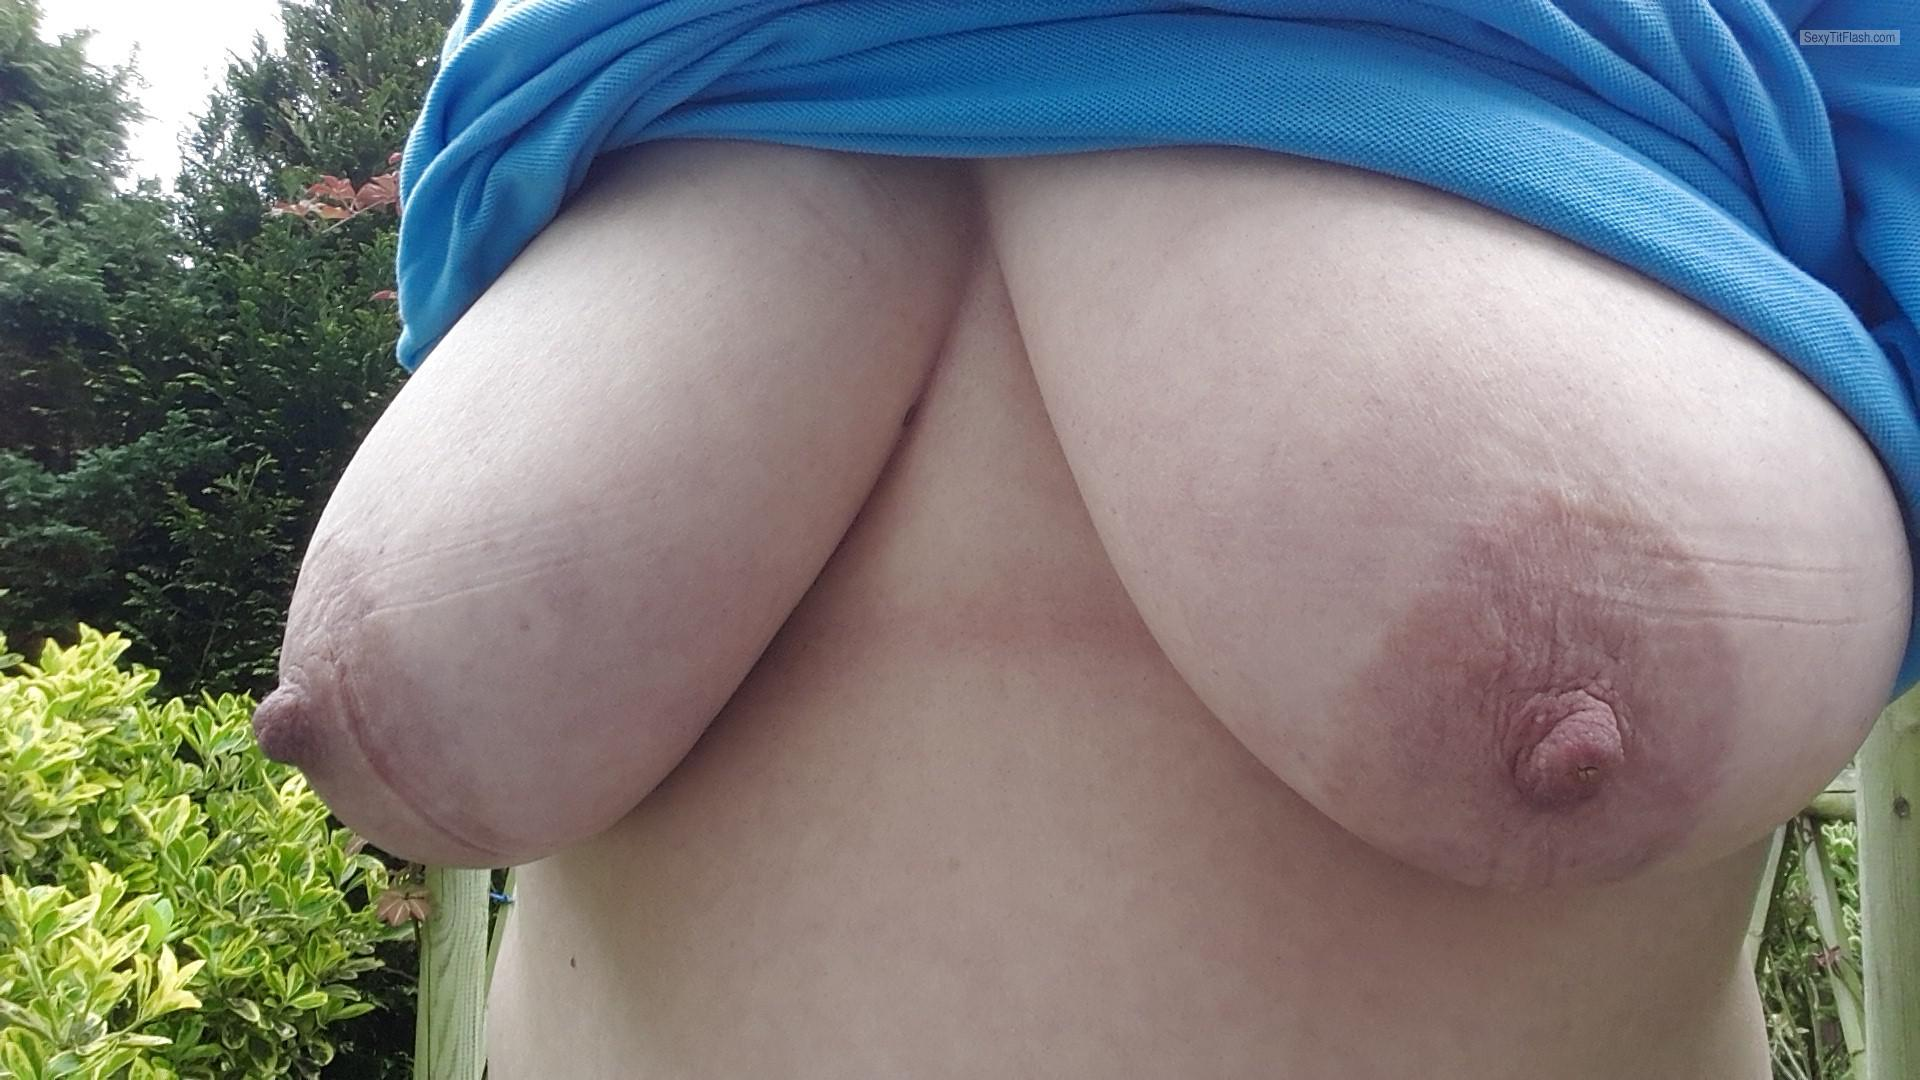 My Big Tits Selfie by Hellsbells999